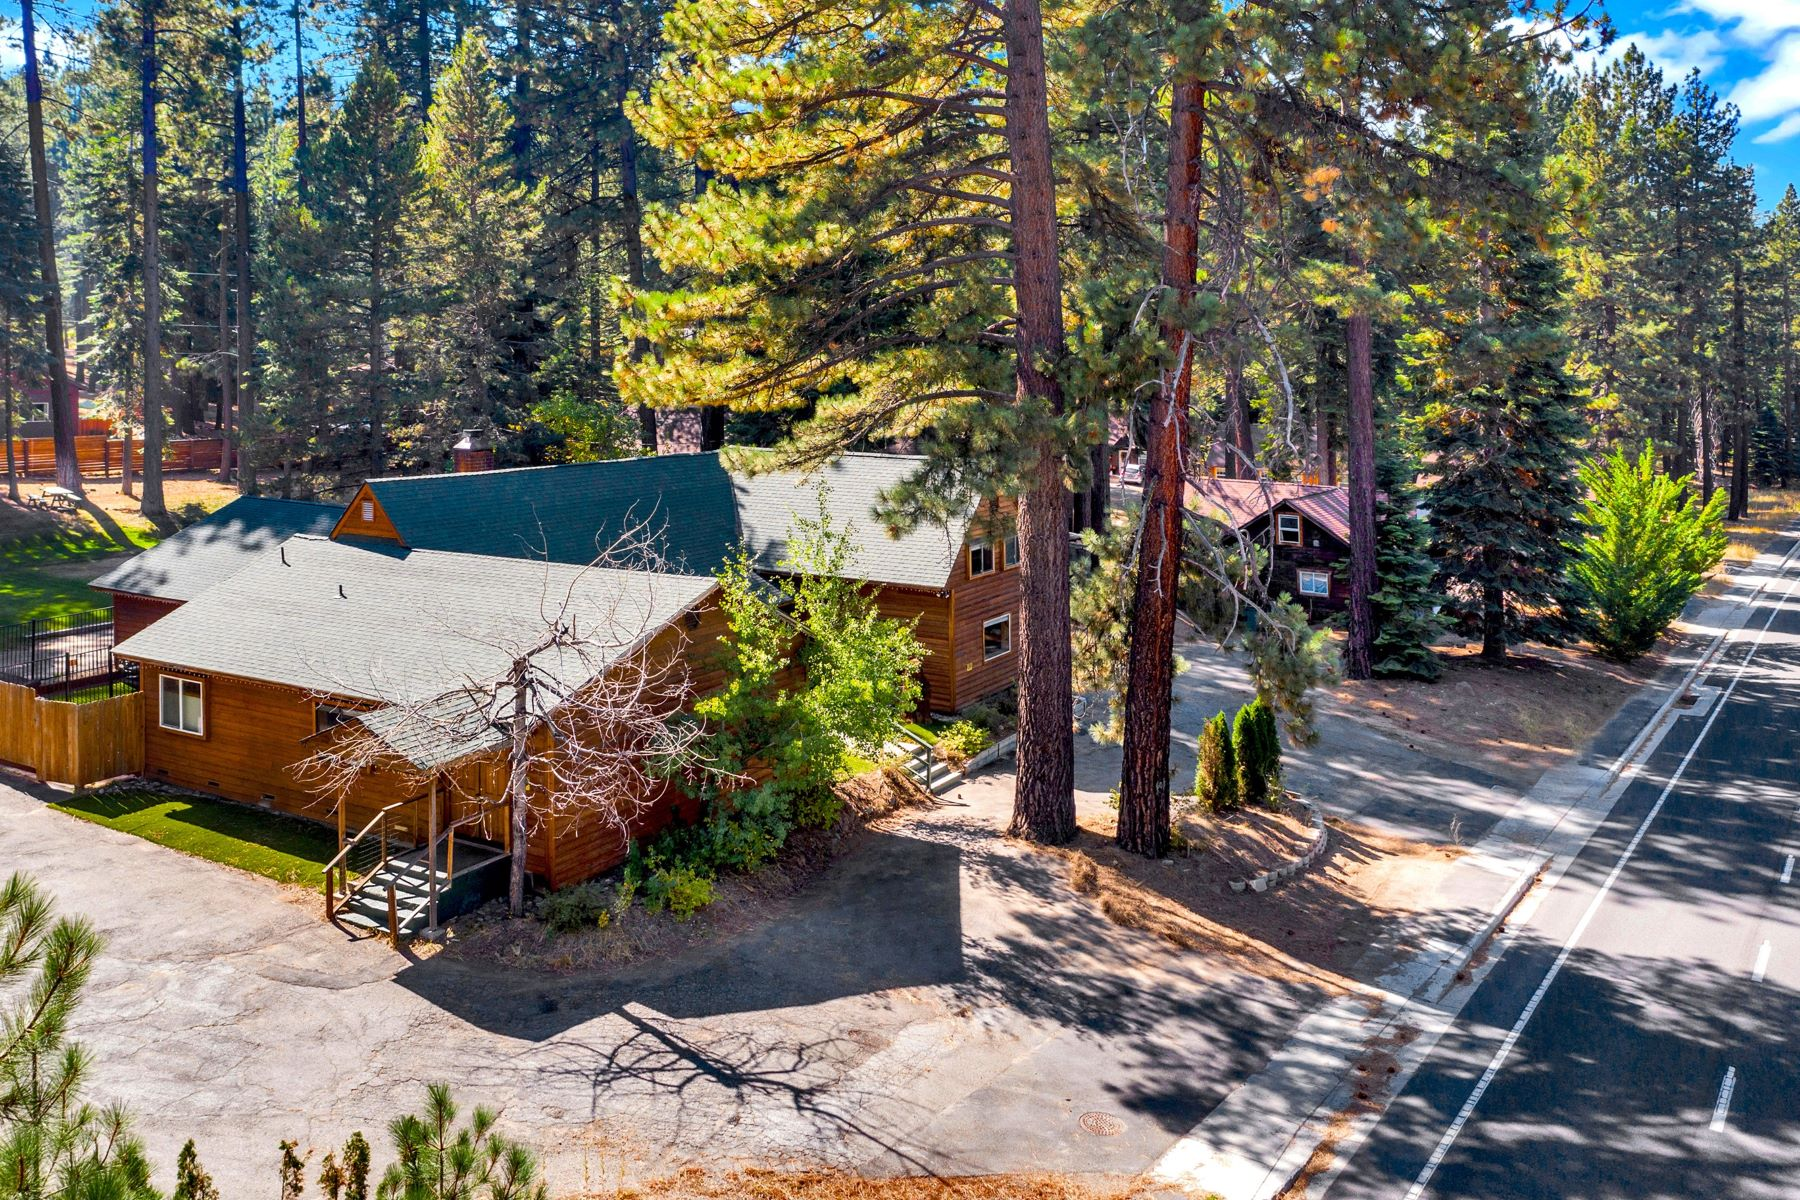 Multi-Family Homes for Active at Mountain Retreat on Emerald Bay Road 608/580 Emerald Bay Rd South Lake Tahoe, California 96150 United States